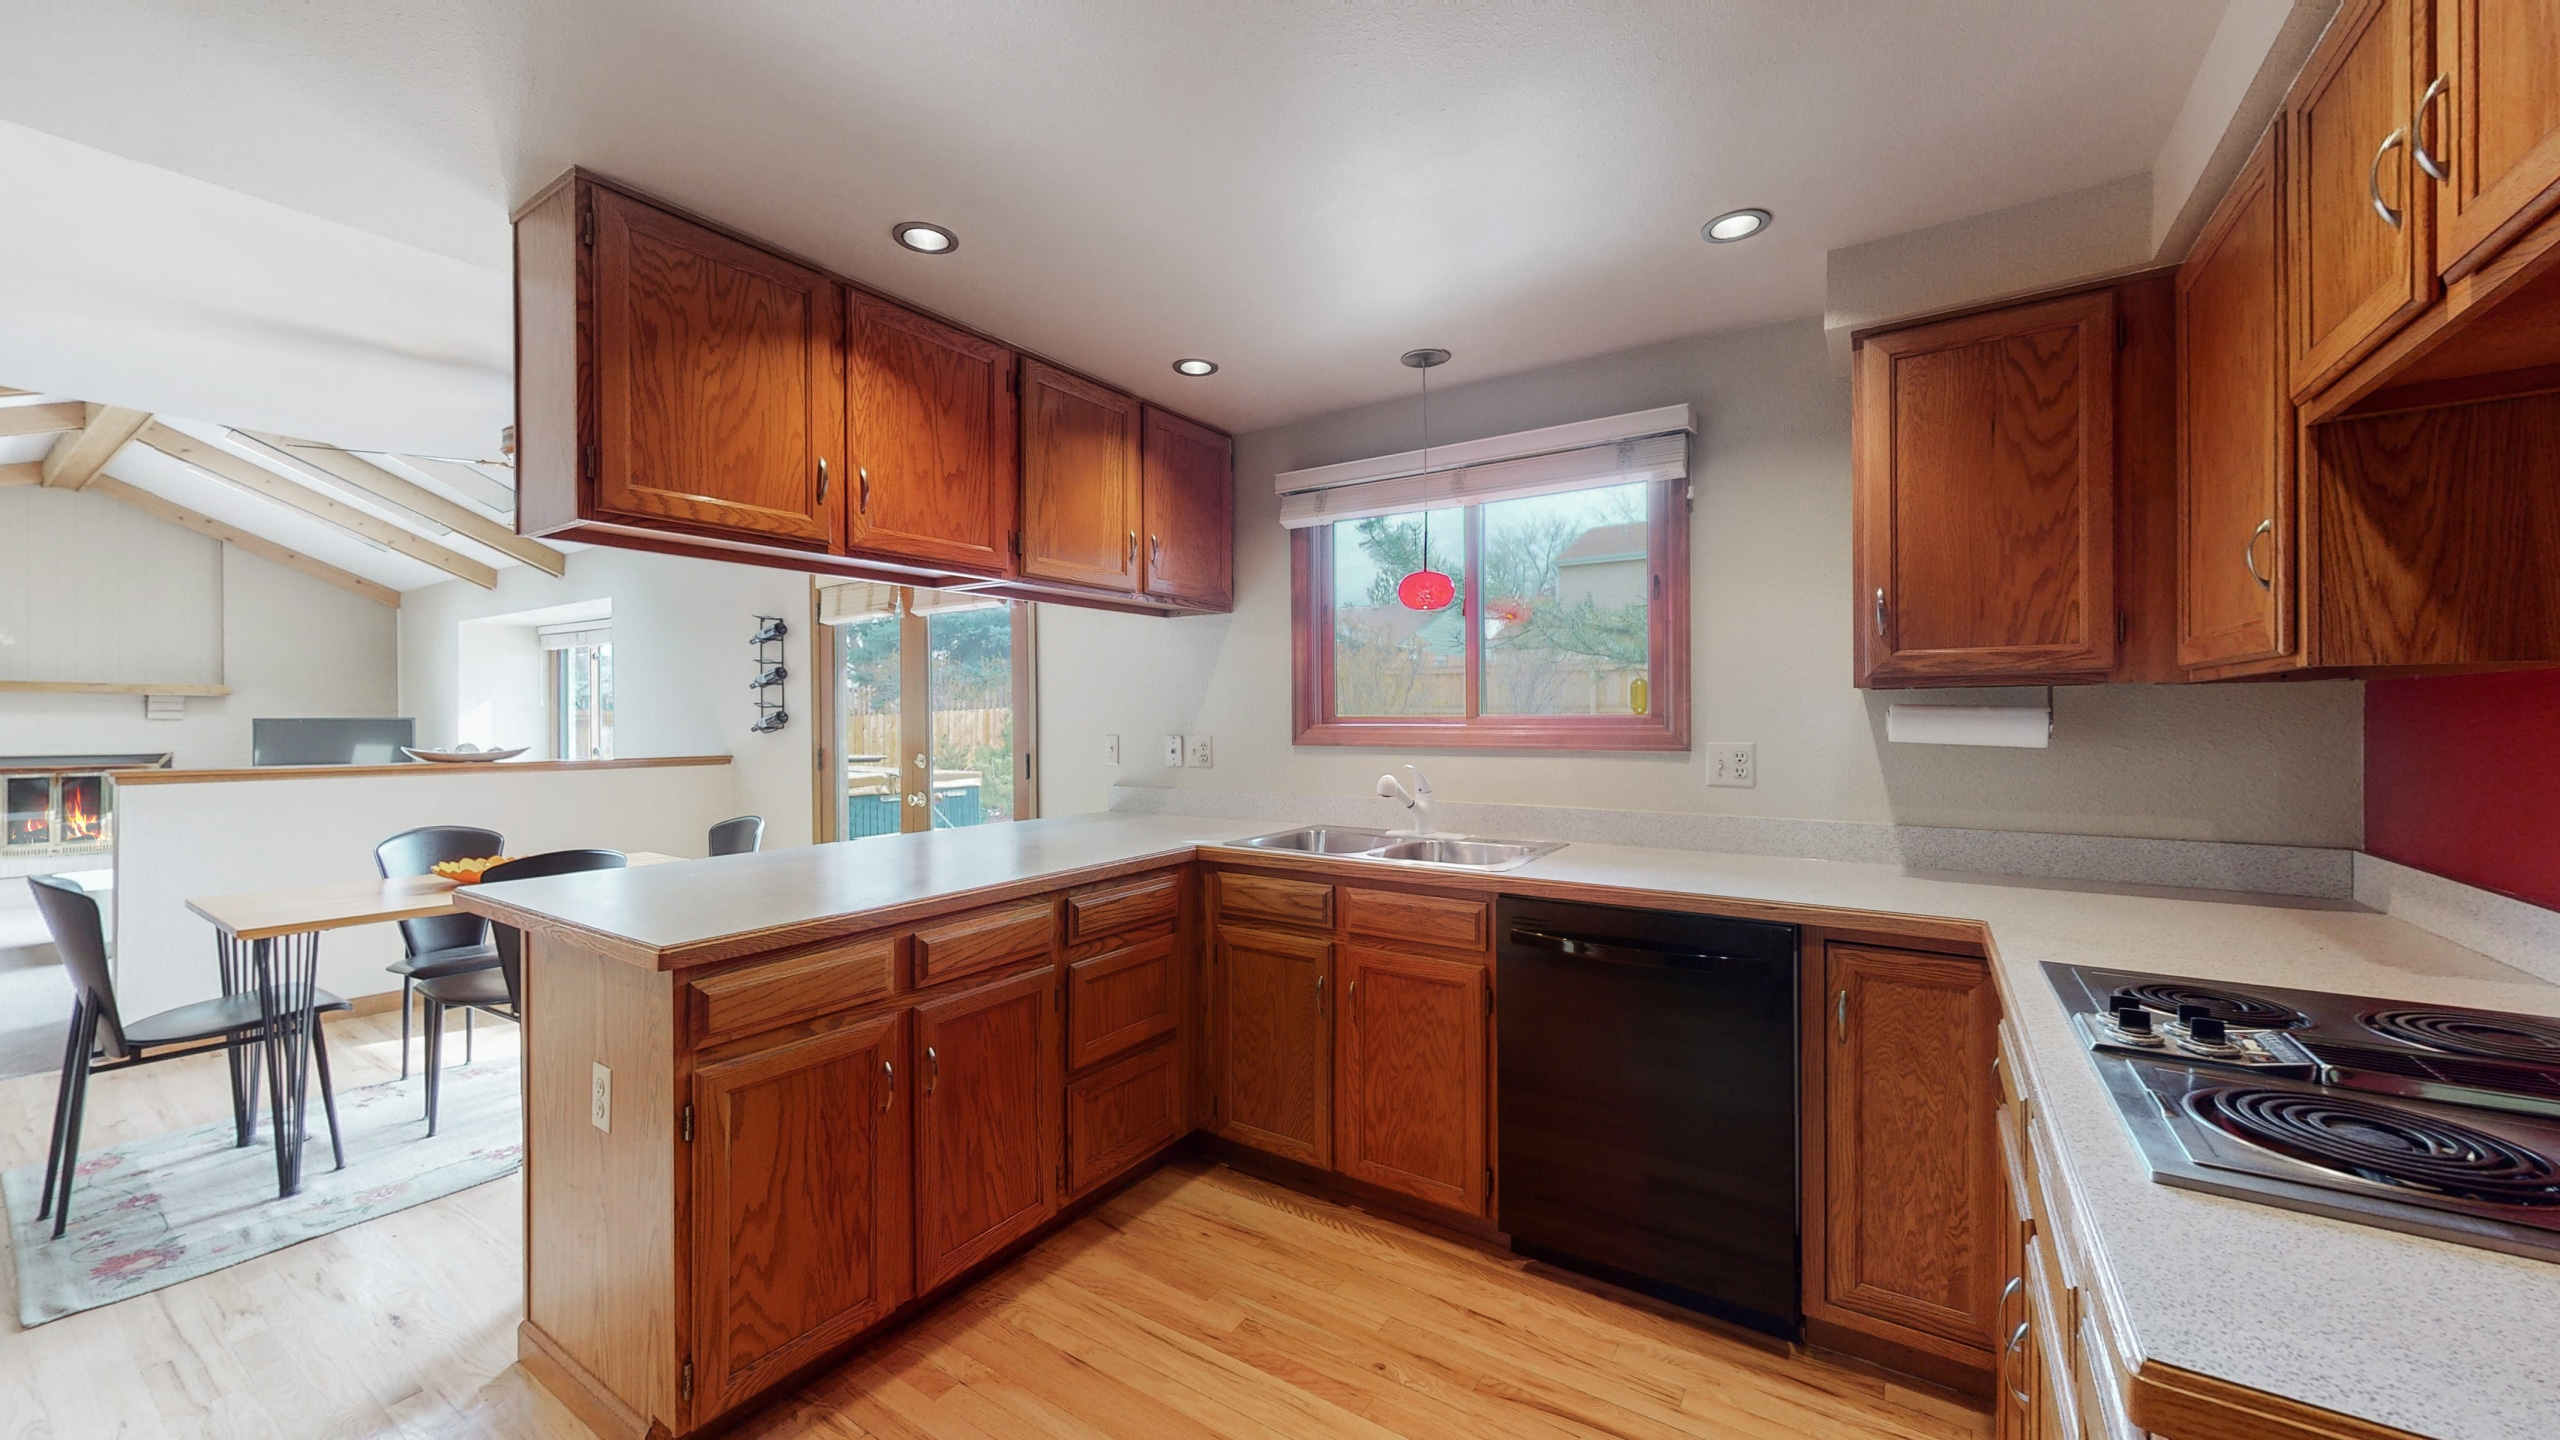 Kitchen with lots of natural light